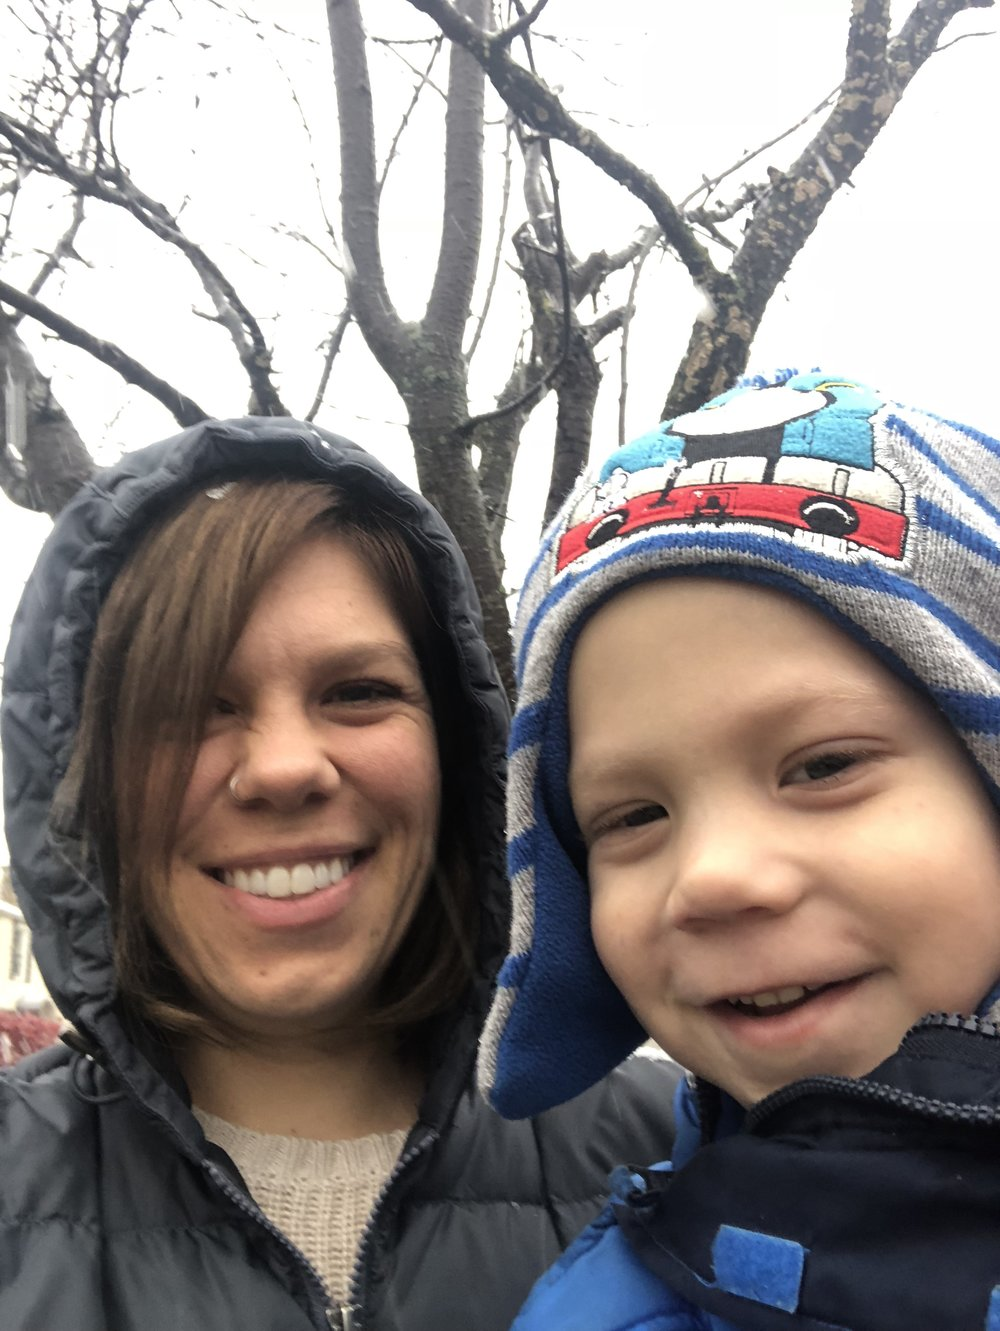 Me and my youngest son enjoying the first snowfall in Buffalo for 2018